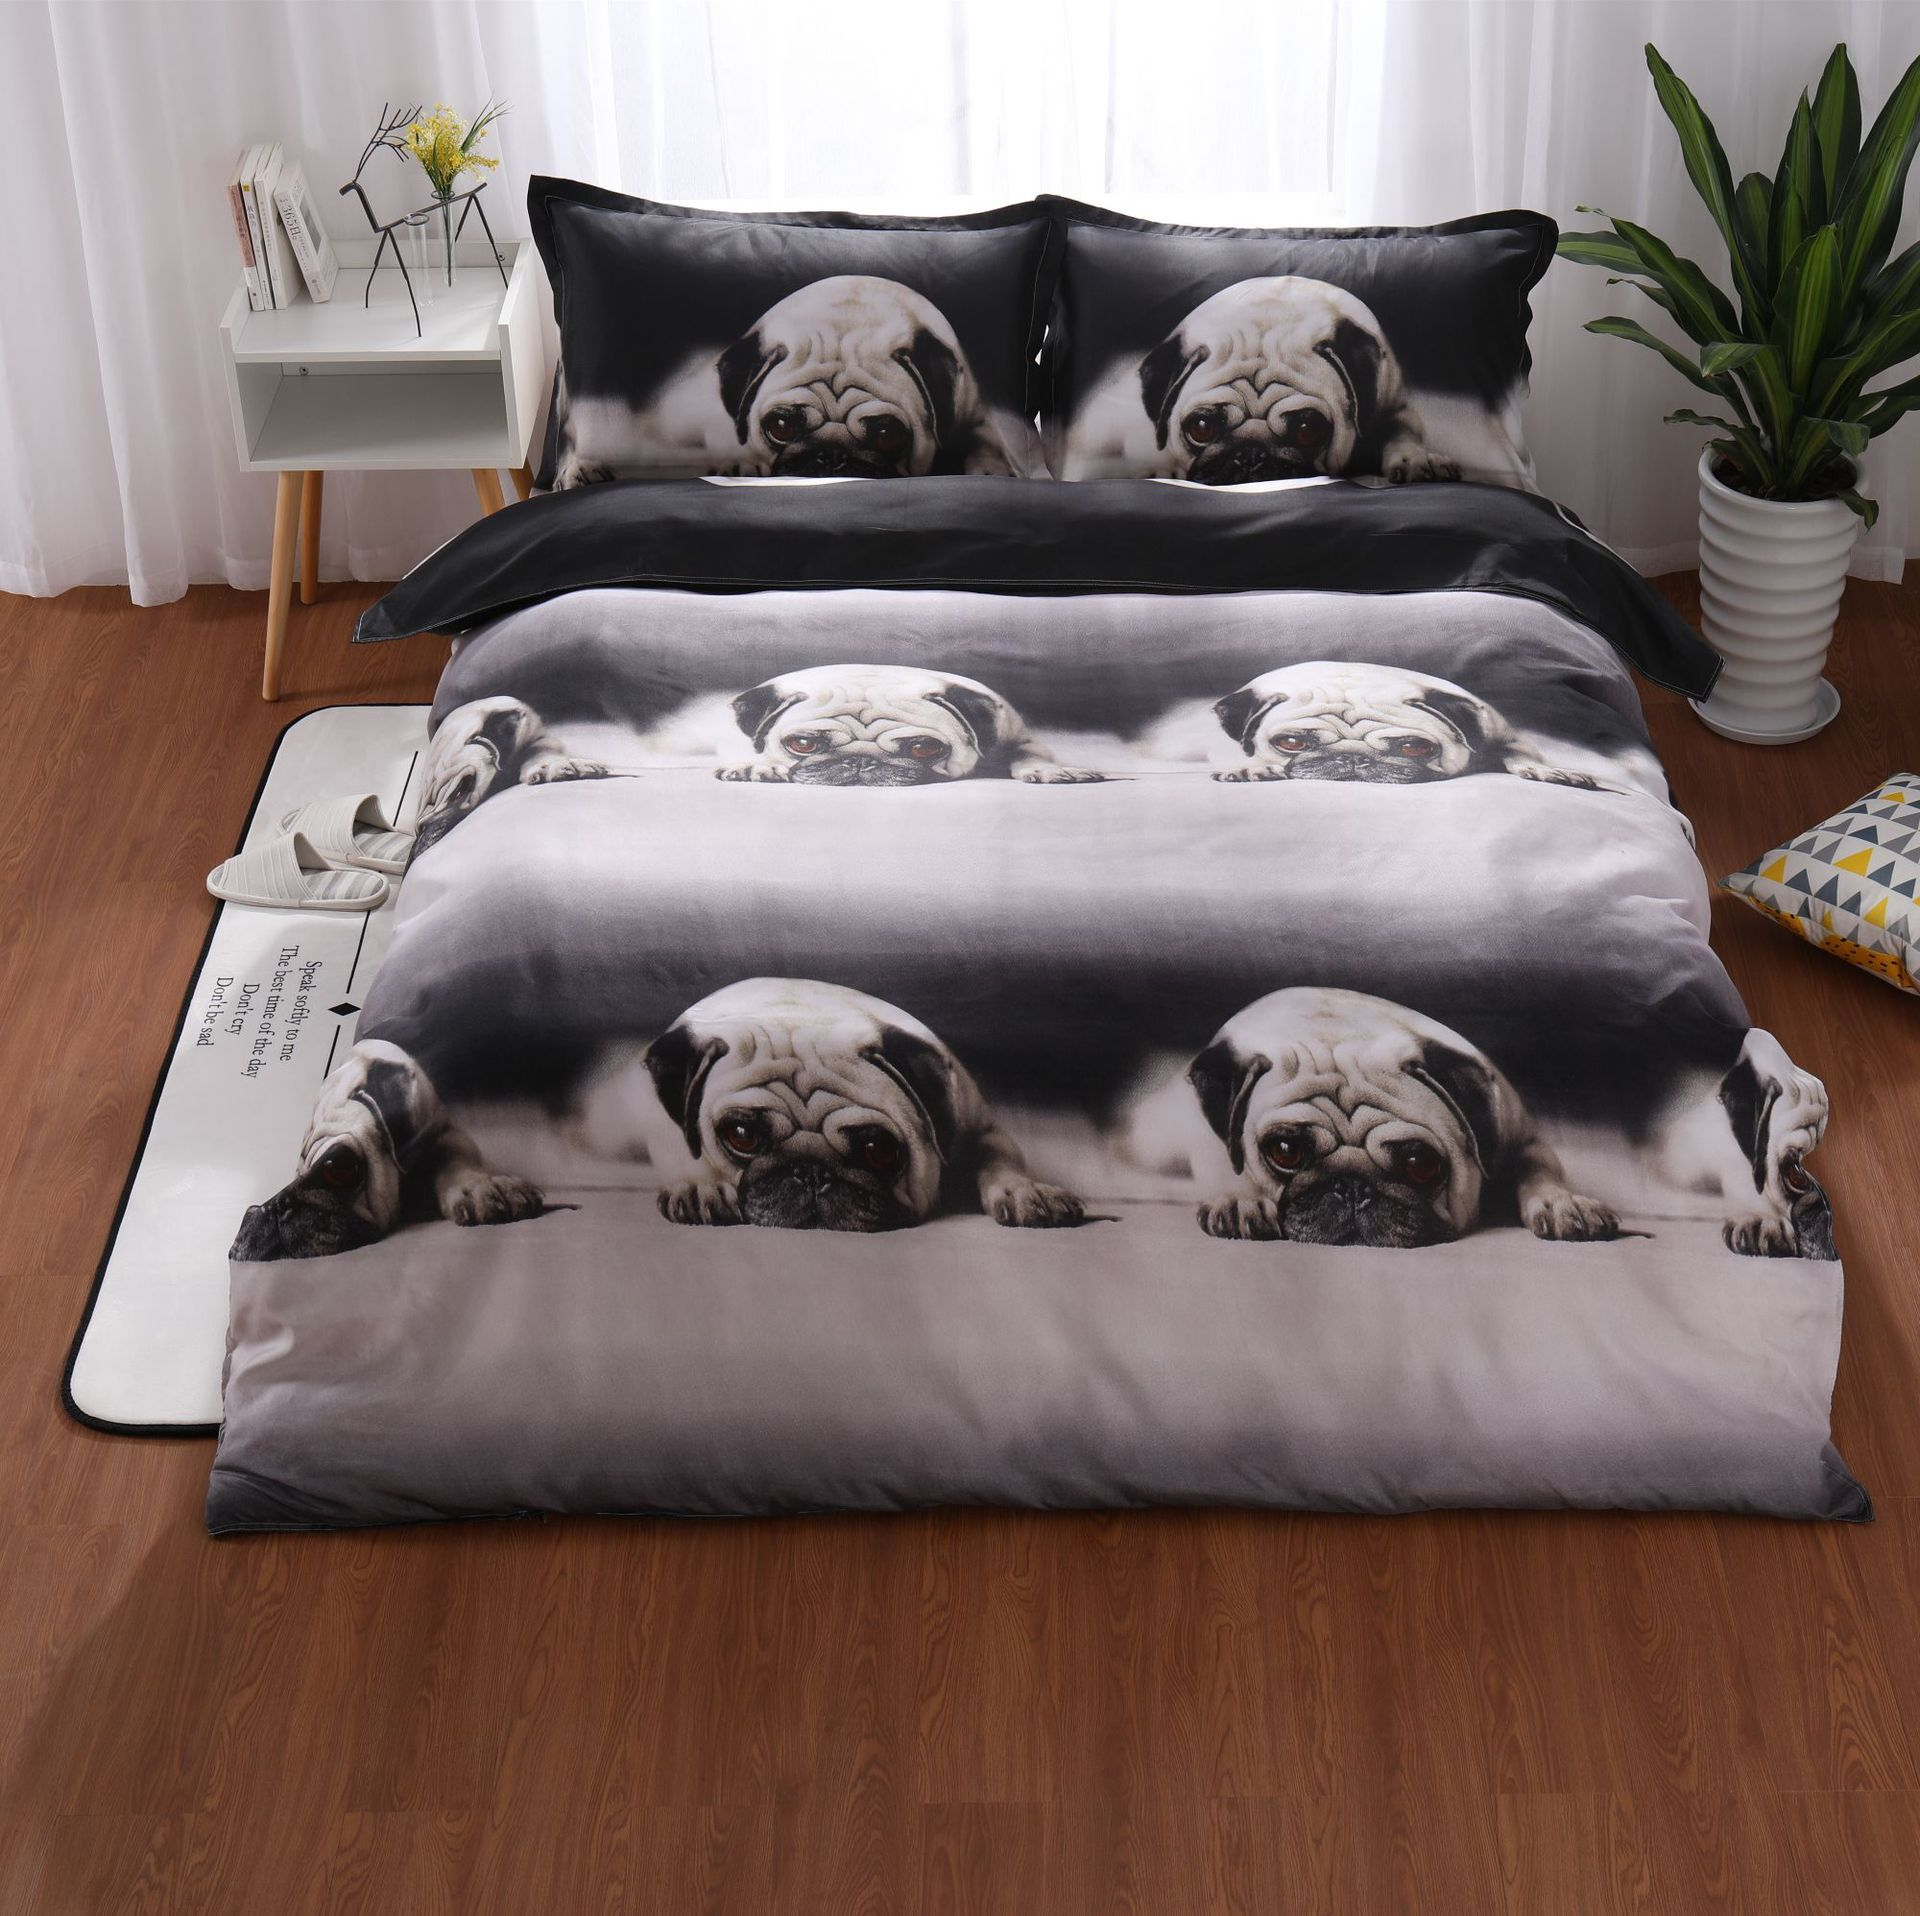 3d Black White Dog Printed Bedding Set Adult Kids Cute Bed Linens Twin Queen King 3pcs Duvet Cover Set with Pillowcases Hot Sale ...